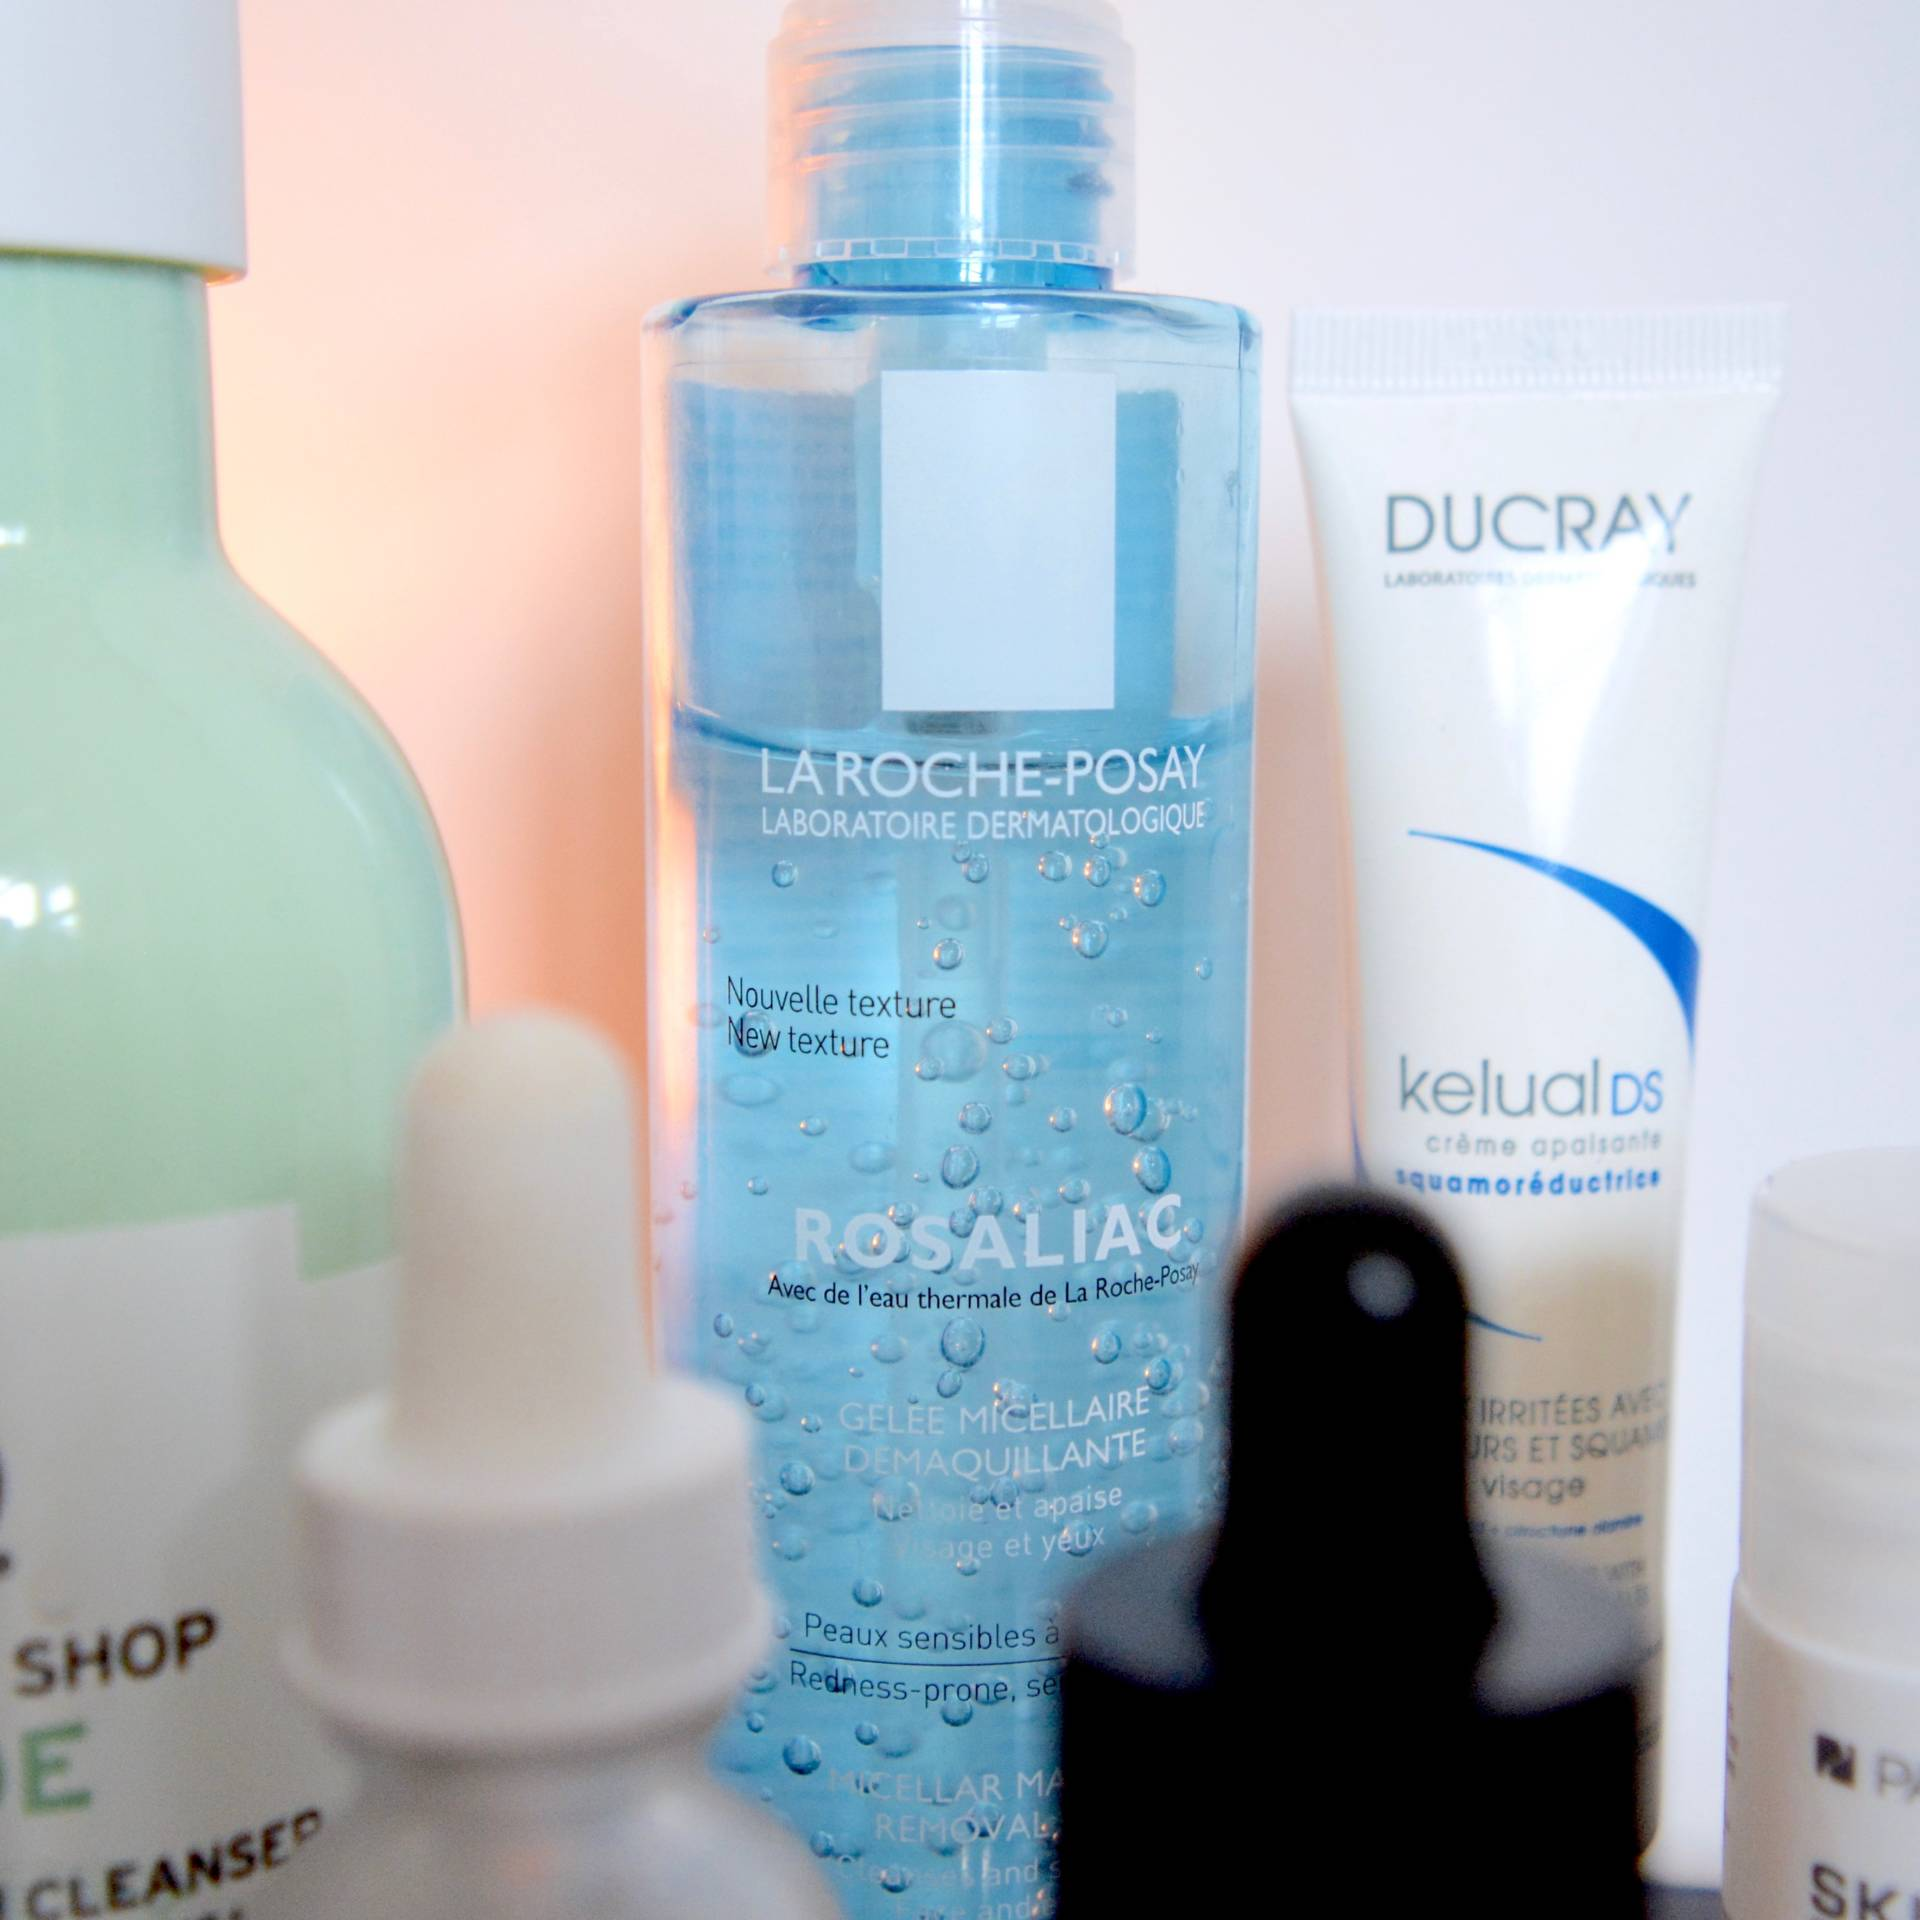 Skincare for rosacea and sensitive skin - La Roche Posay Rosaliac Micellar Make Up Remover